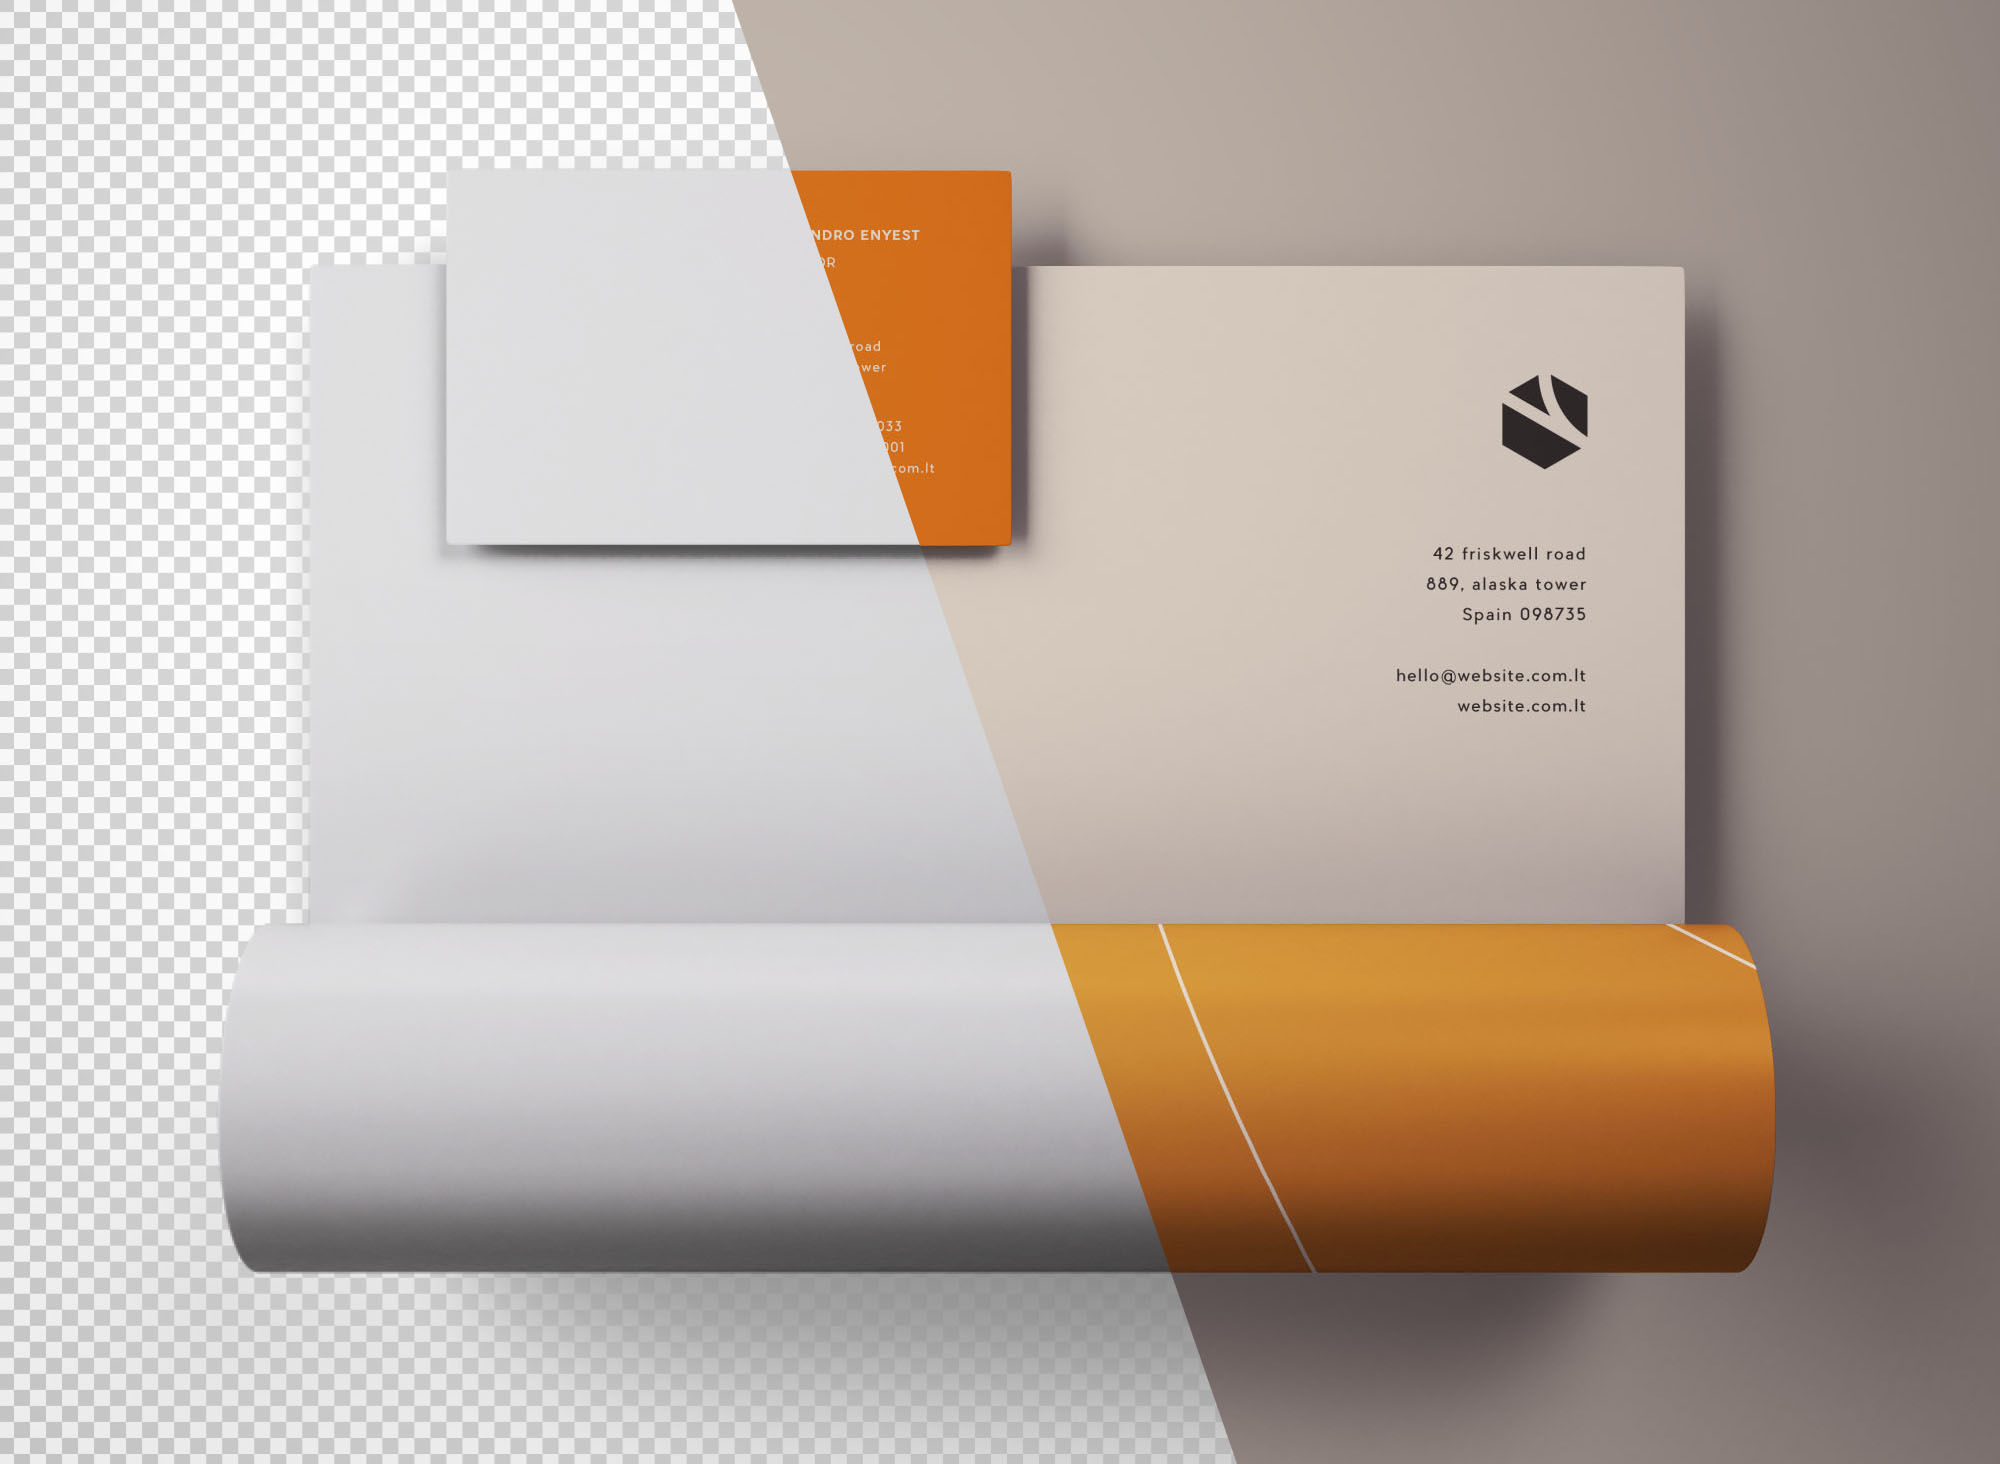 Letterhead & Business Card Mockup - Transparent